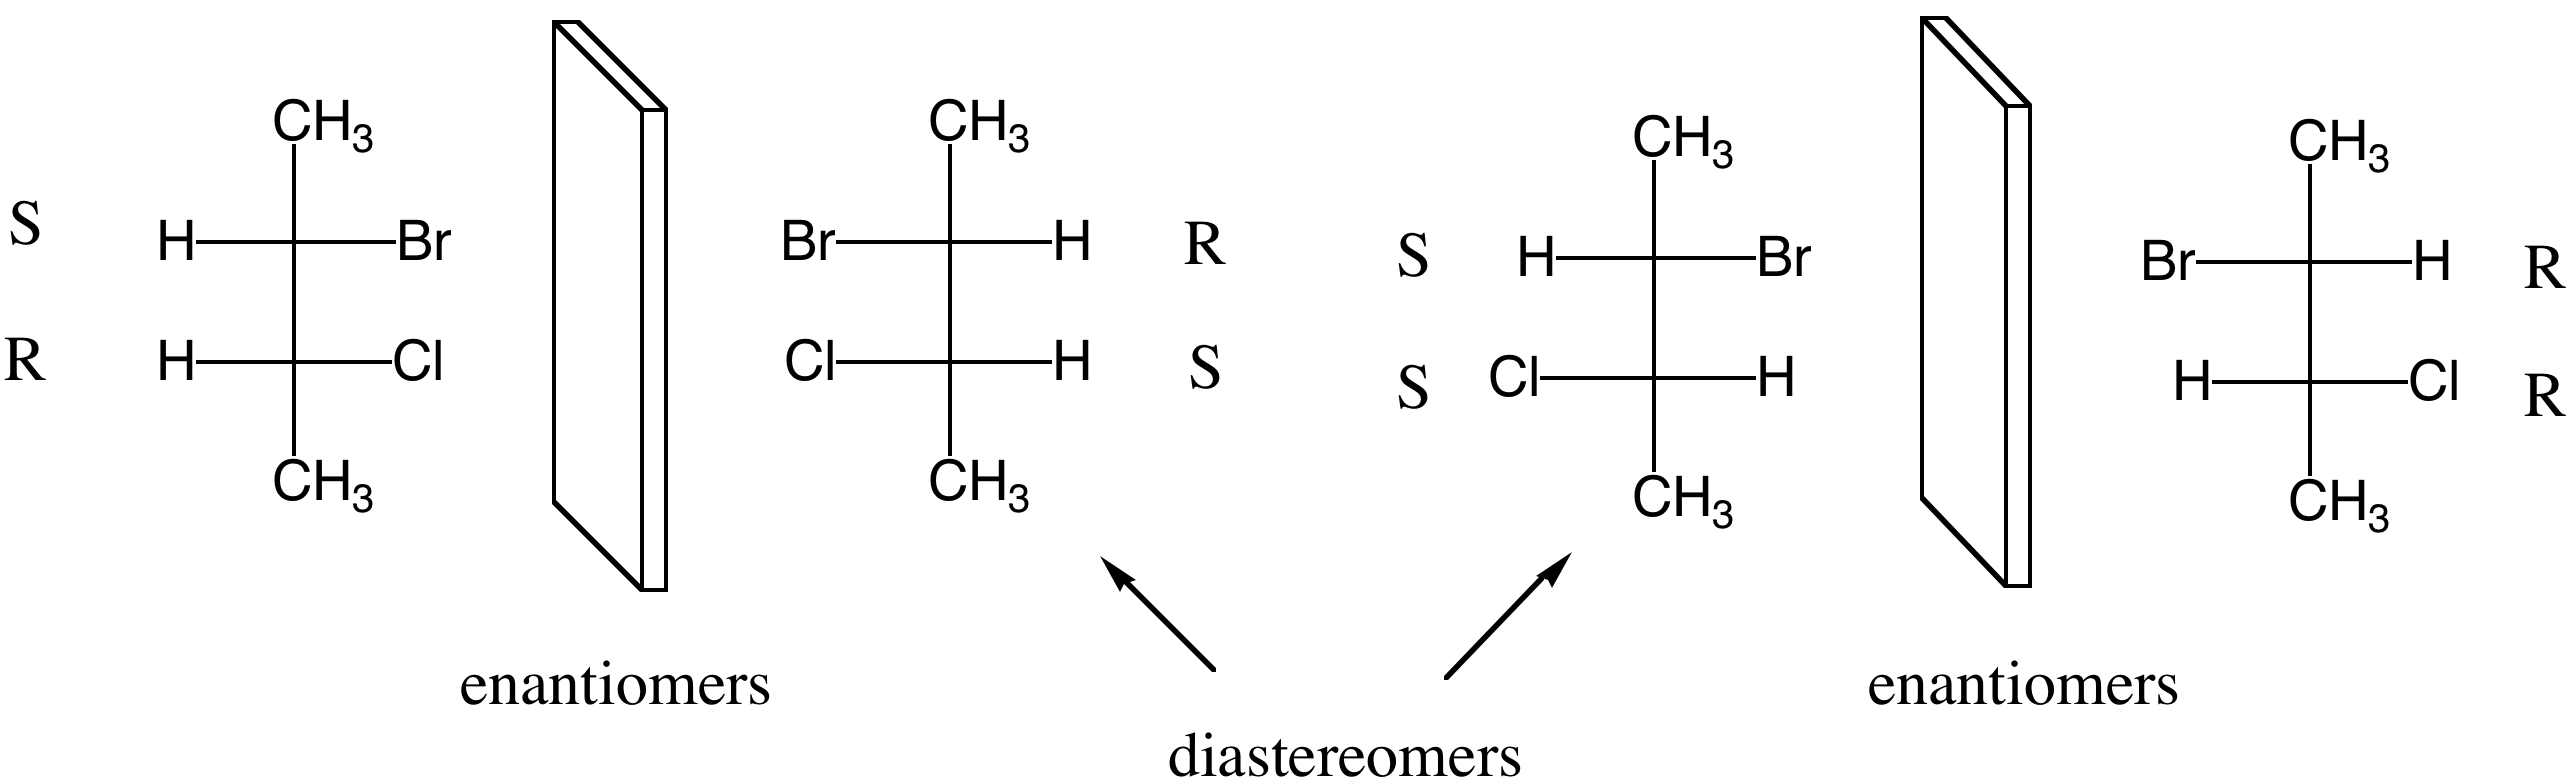 Diastereomers - Any stereoisomer that is not an enantiomer Therefore the two stereoisomers are not mirror images Remember enantiomers: mirror images that